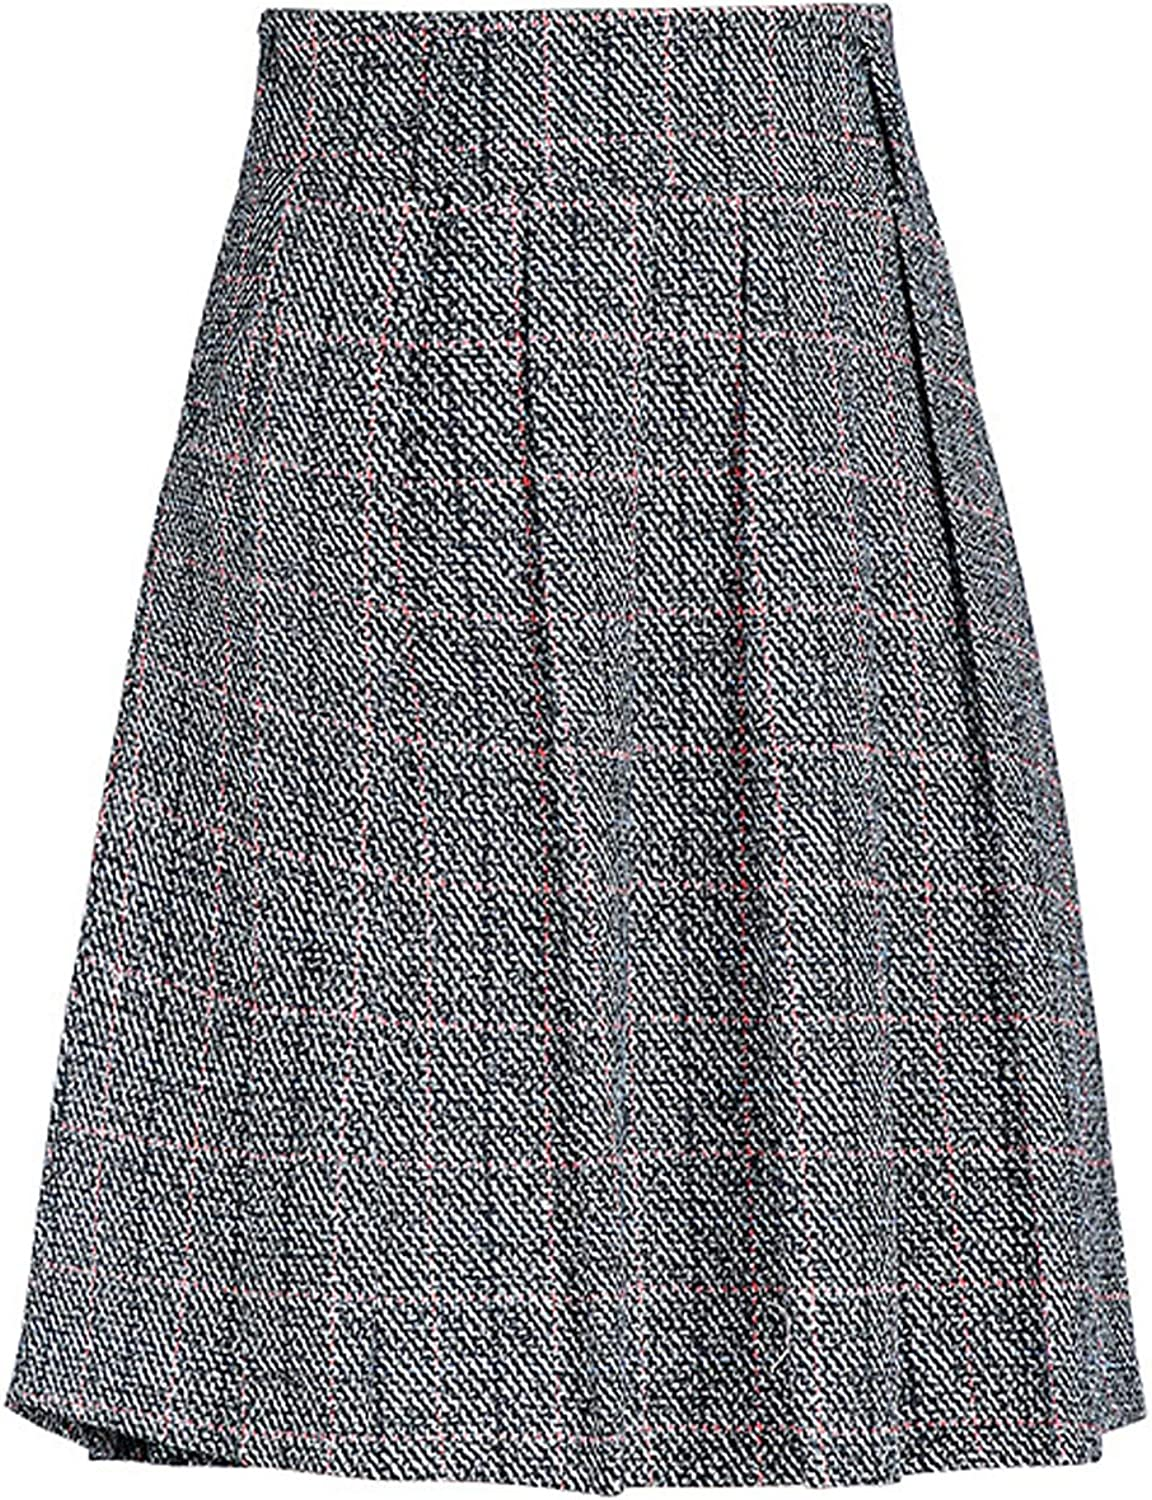 Chouyatou Women's Graceful Knee Length ALine Pleated Midi Plaid Wool Skirt